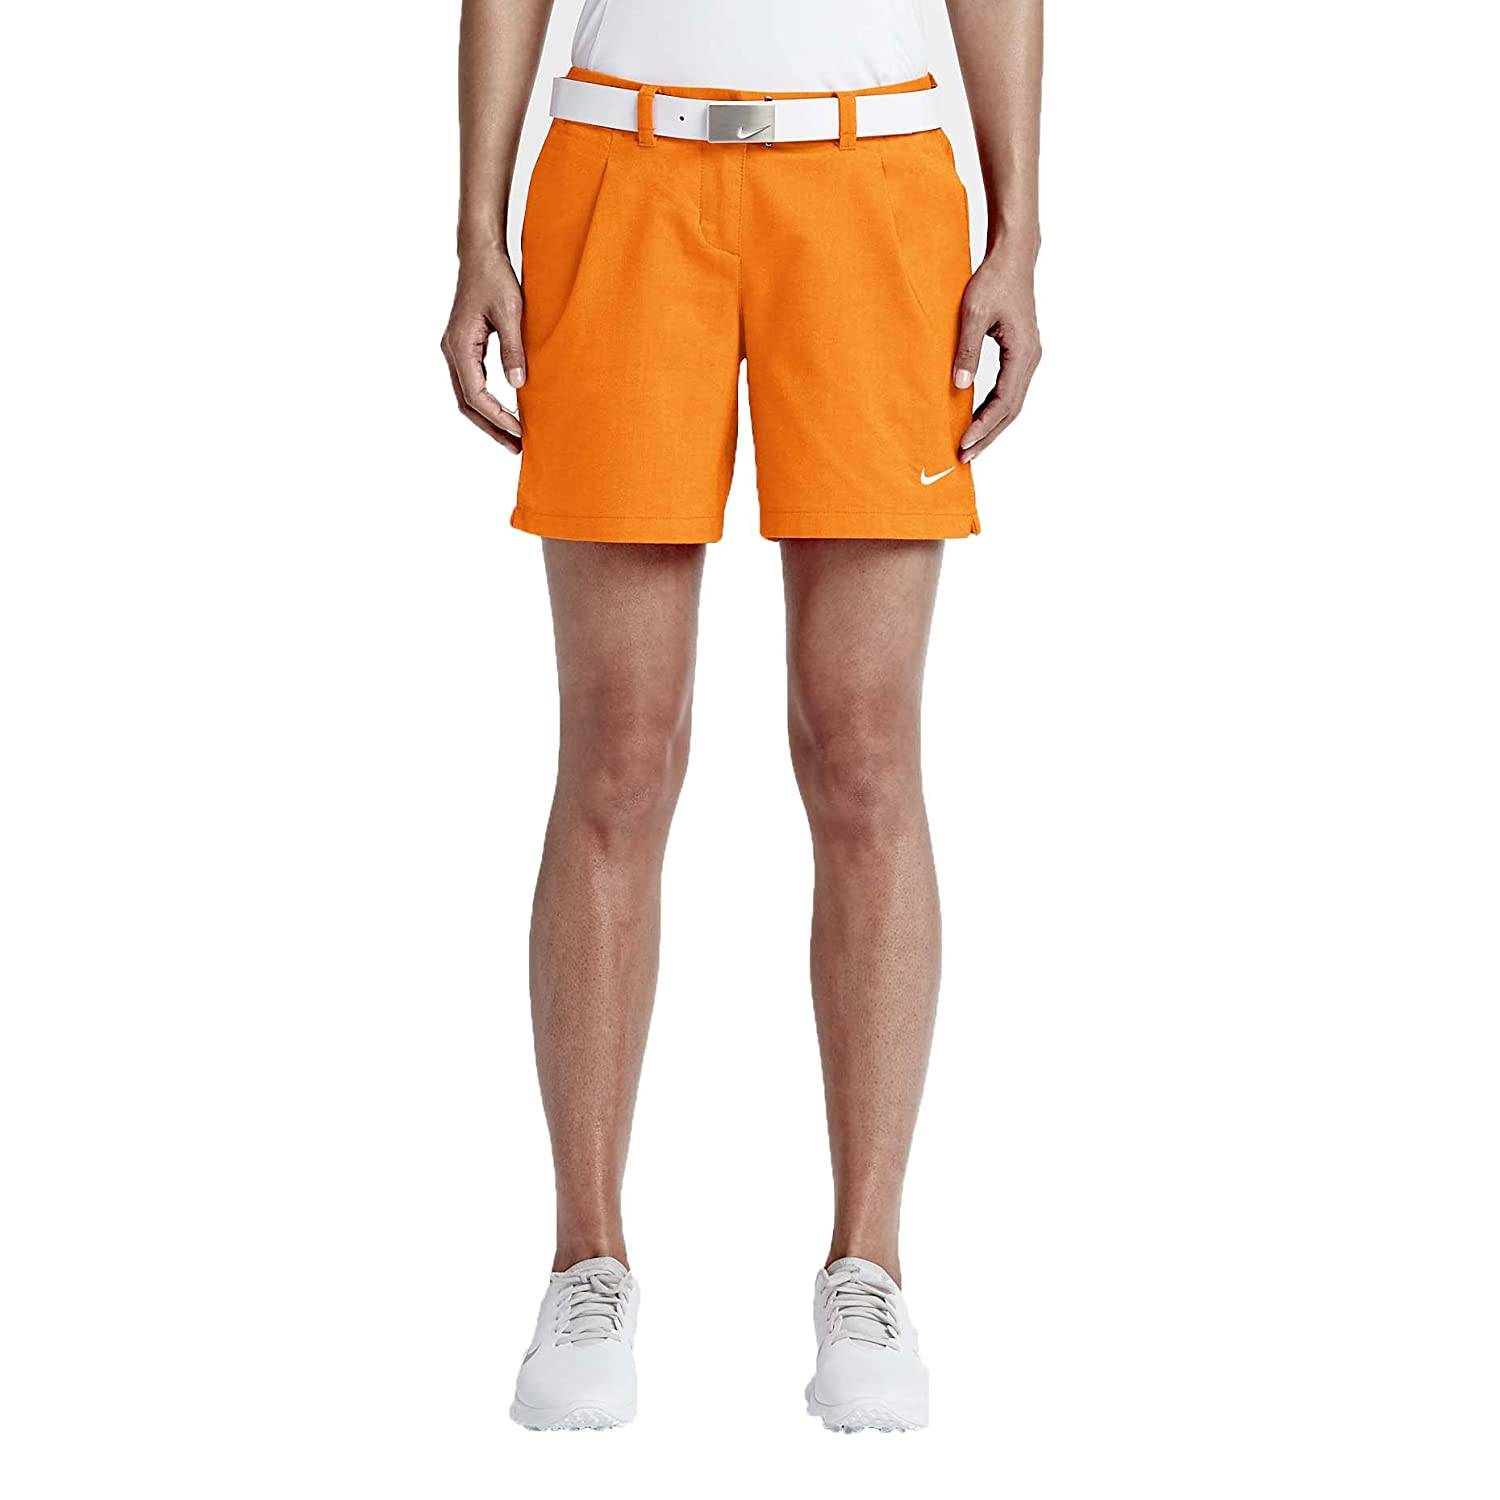 Nike Women's Dri-Fit Oxford Golf Shorts Vivid Orange 725763 868